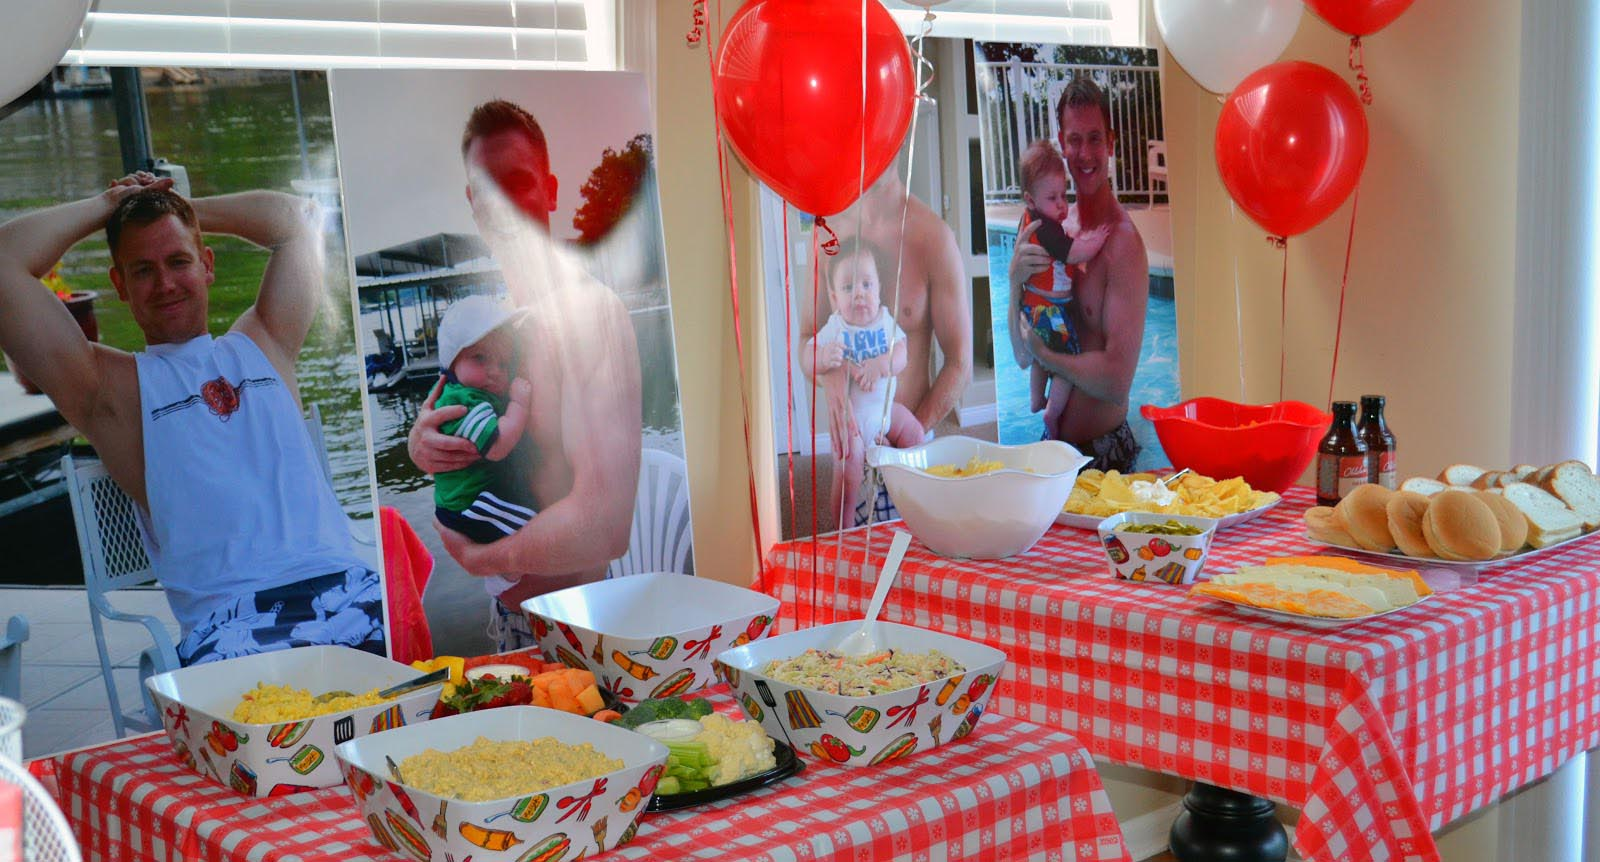 Surprise Birthday Party Ideas for Him